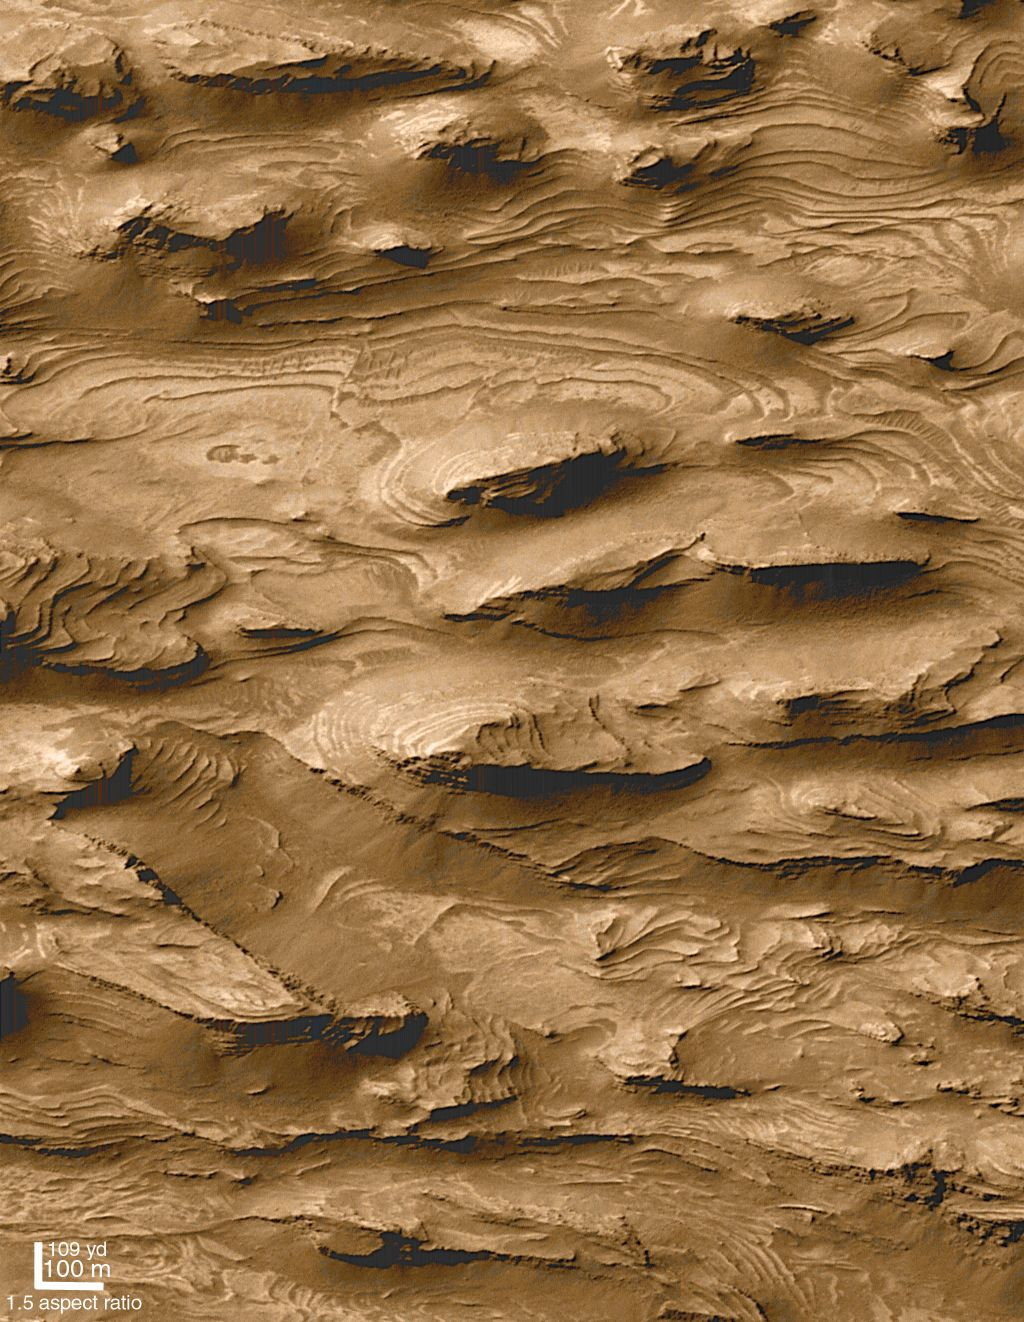 See Explanation Clicking On The Picture Will Download The Highest Resolution Version Available Water On Mars Craters Of The Moon Space Images